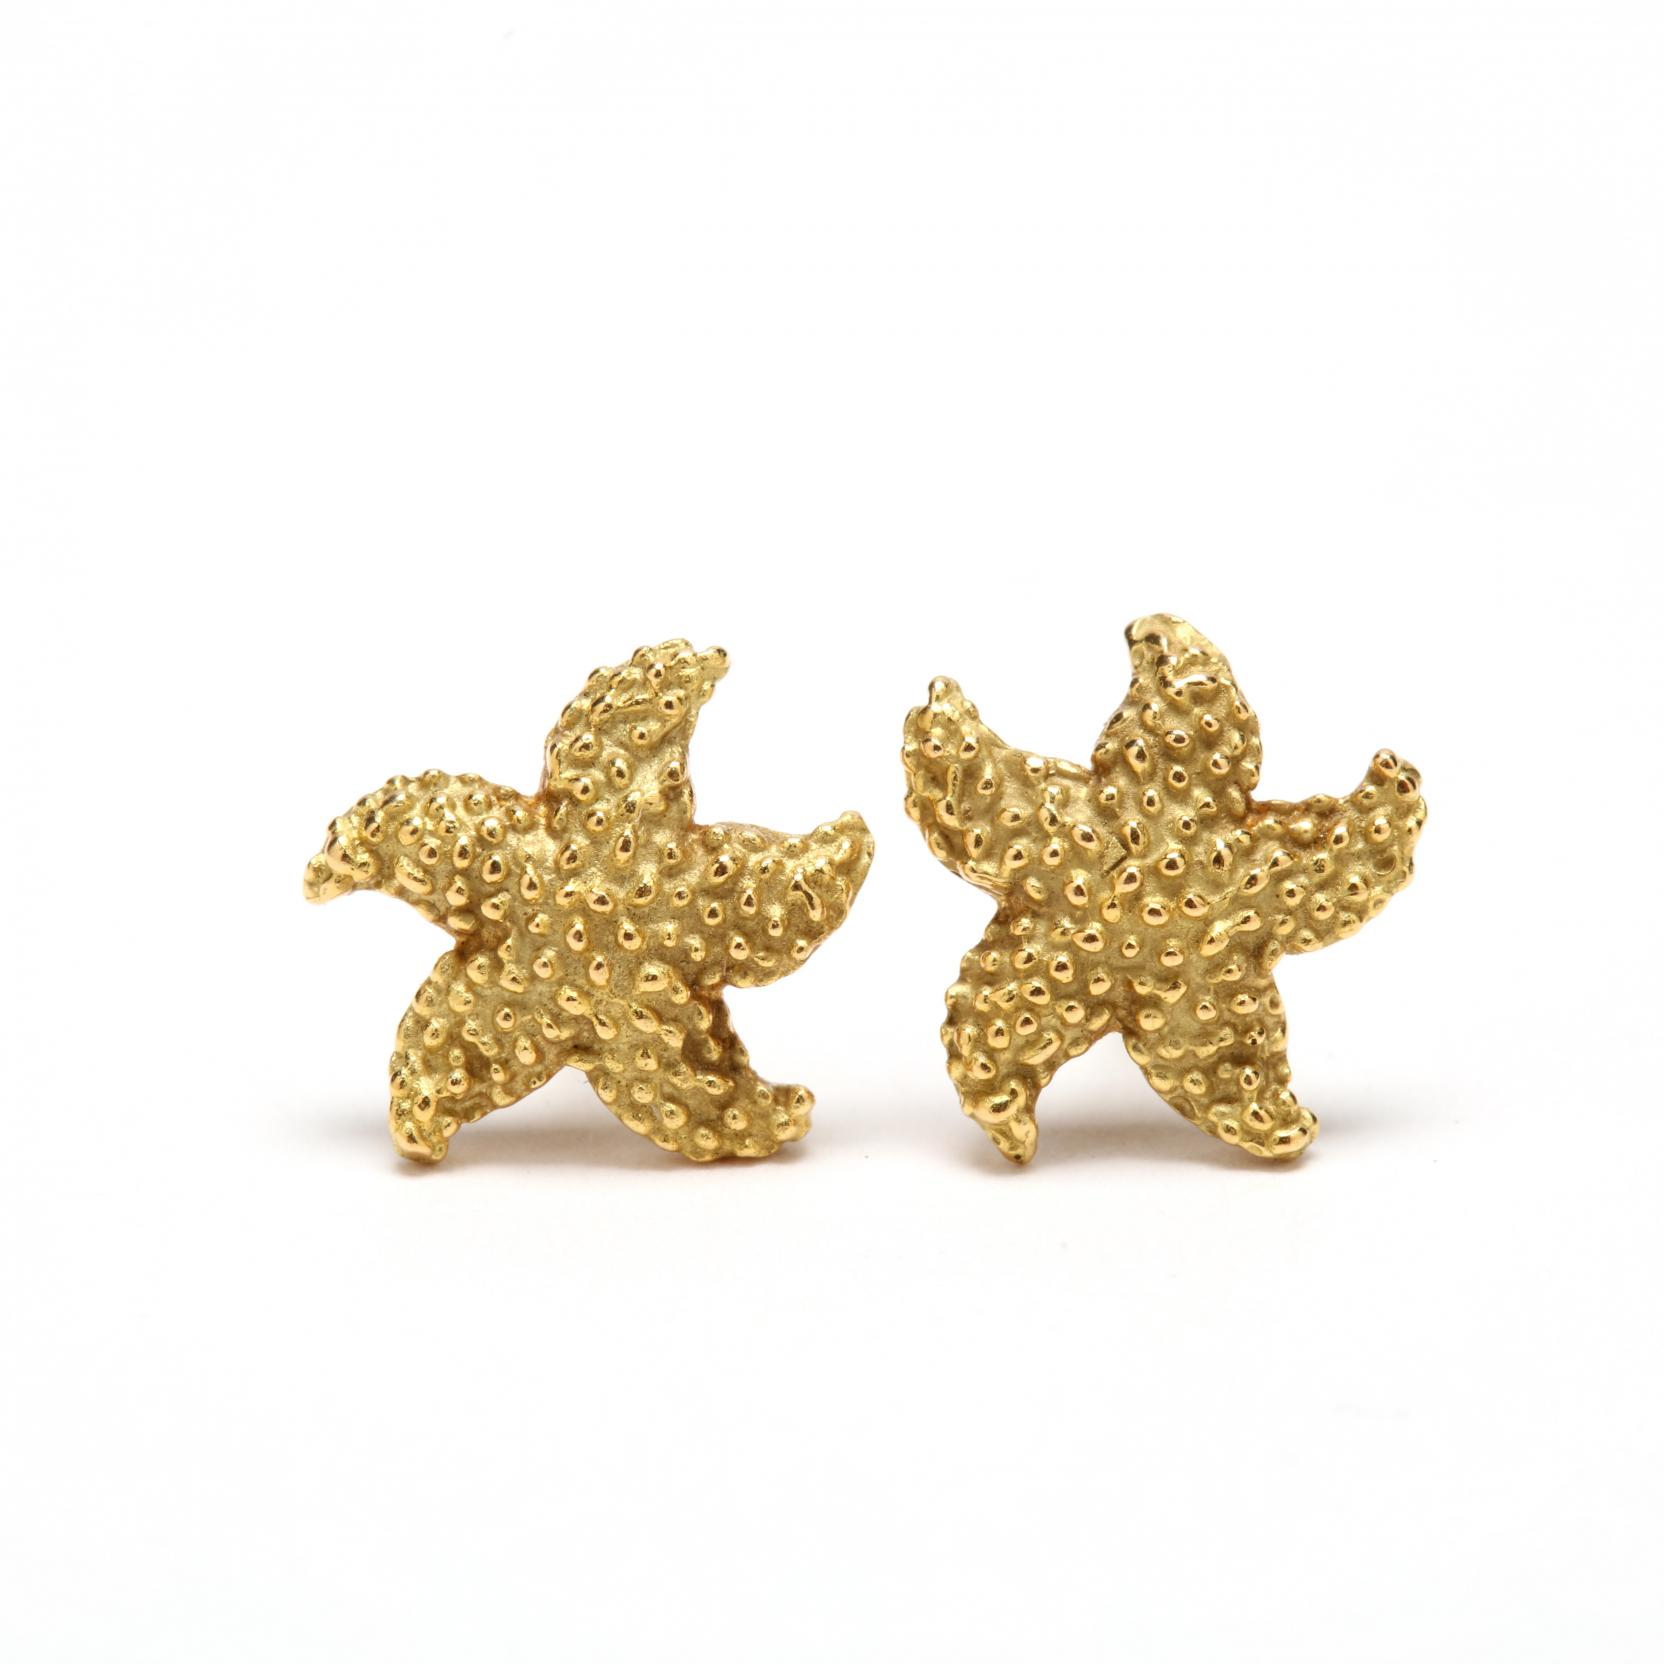 18kt-gold-starfish-stud-earrings-mcteigue-for-tiffany-co